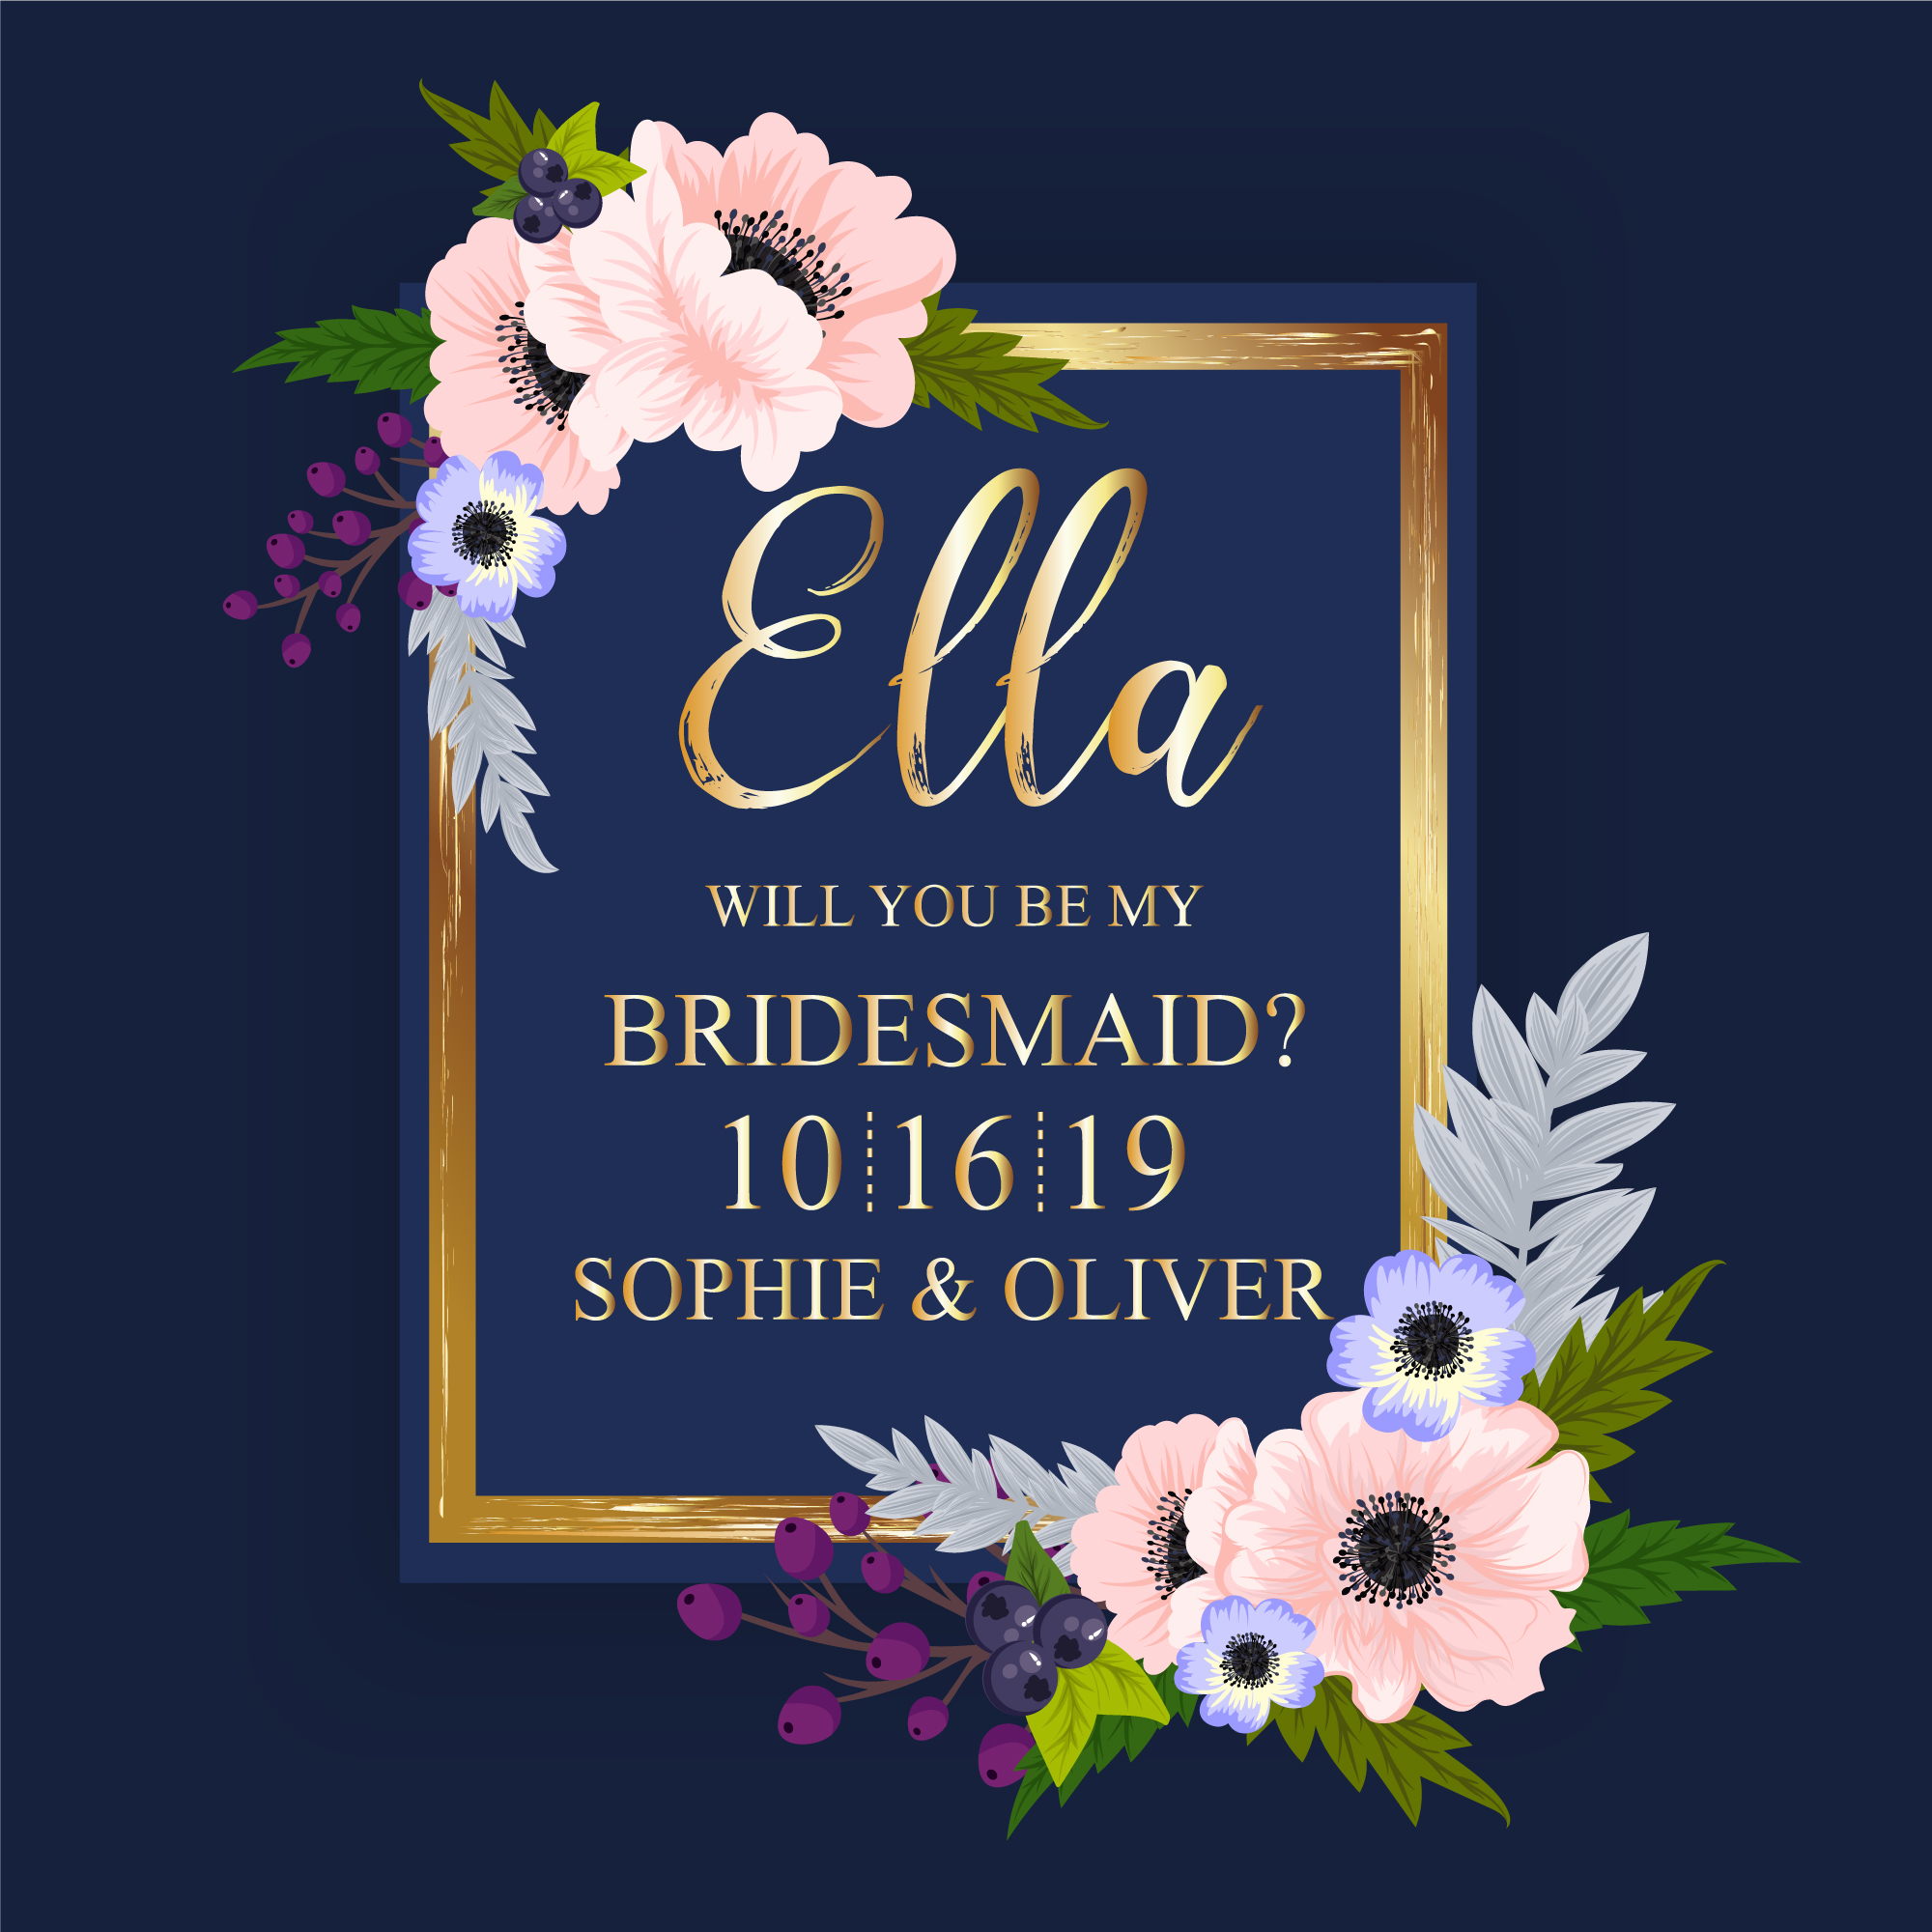 Blue and gold wedding card with flowers